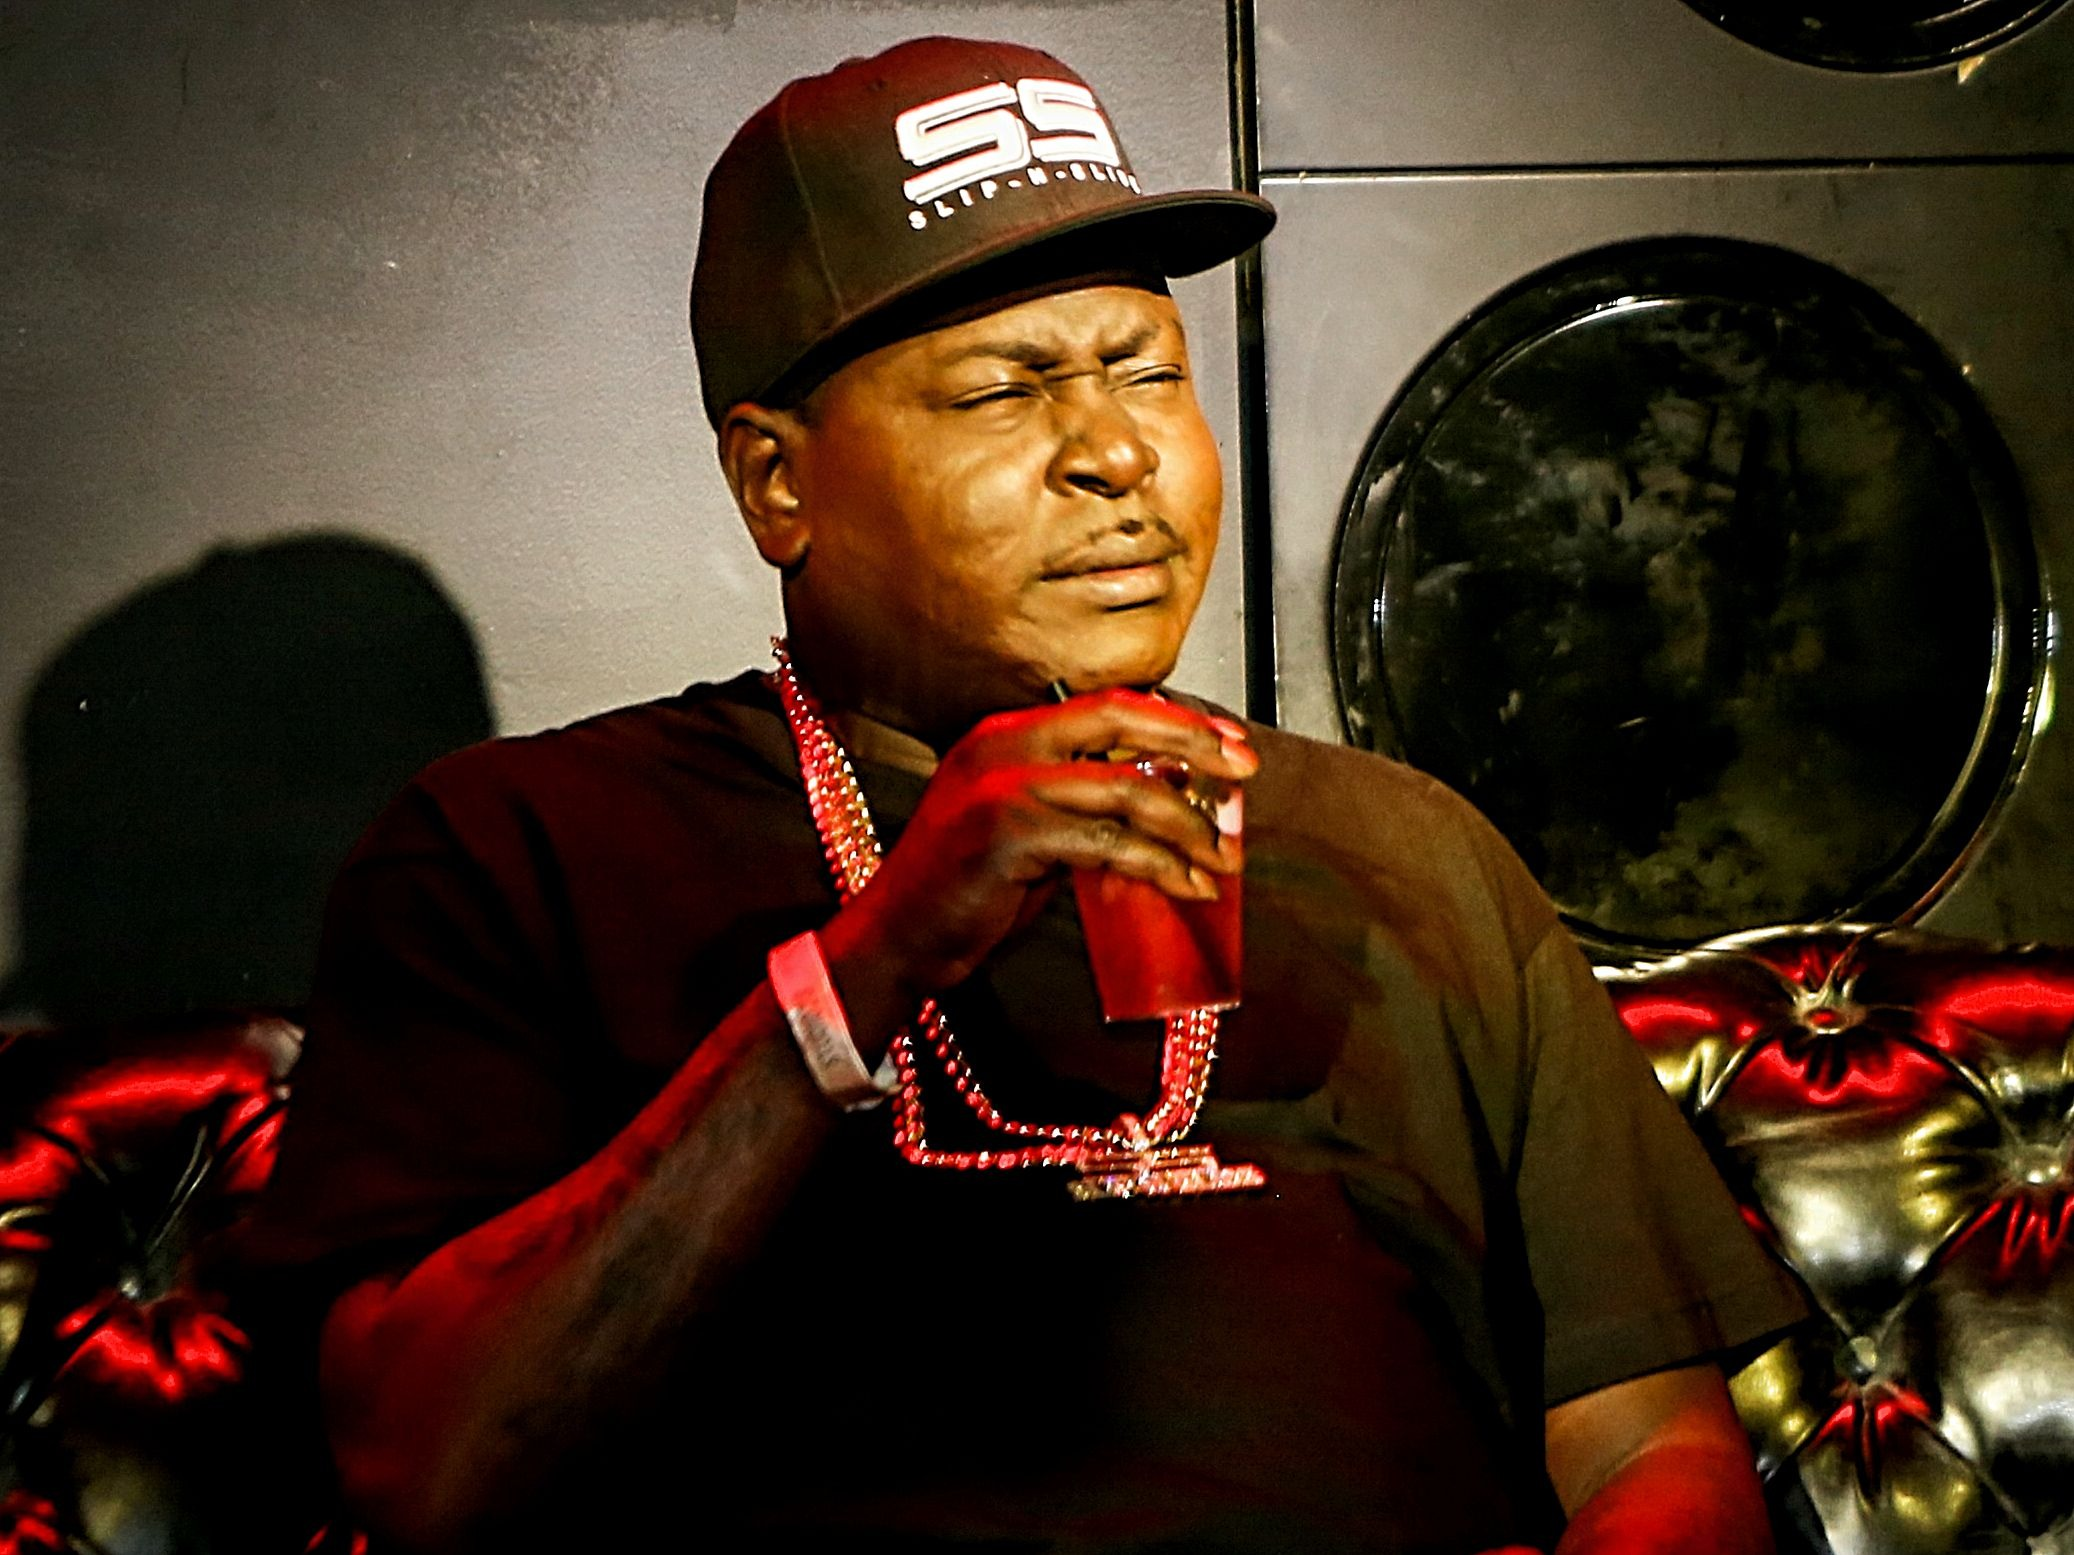 Trick Daddy Goes On Coronavirus Rant Because He Can't Go To The Strip Club